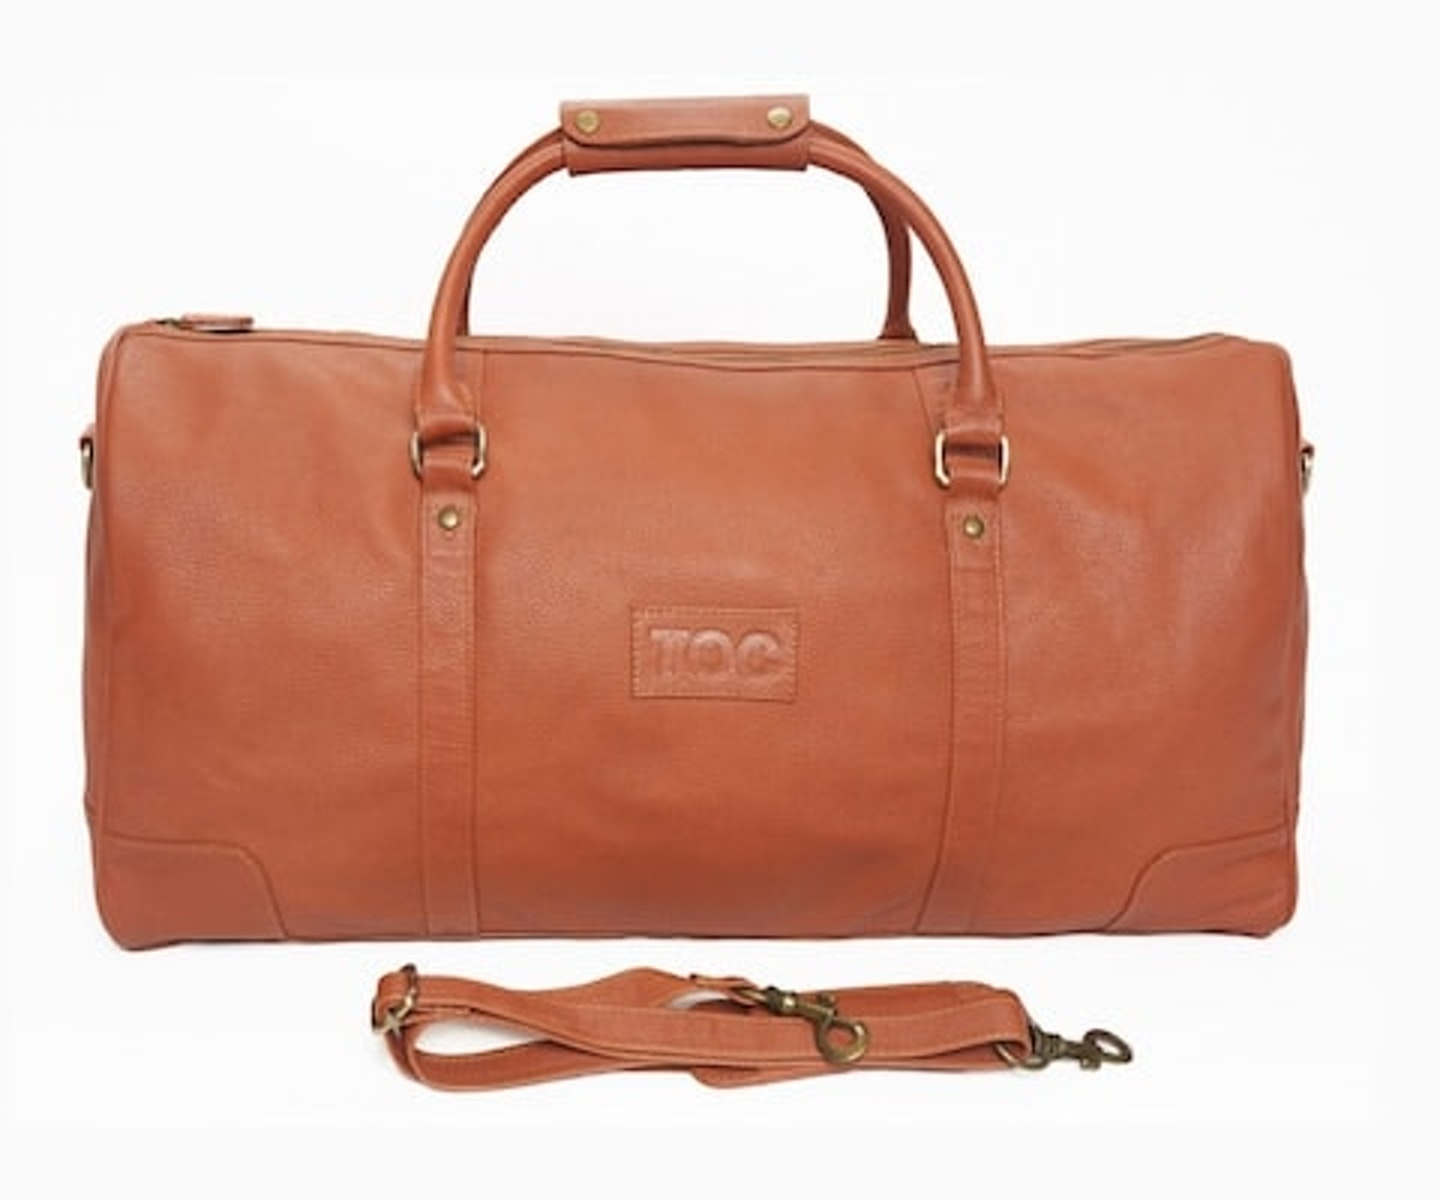 InStitchu Accessories bag TOC Brown Leather Duffel Bag